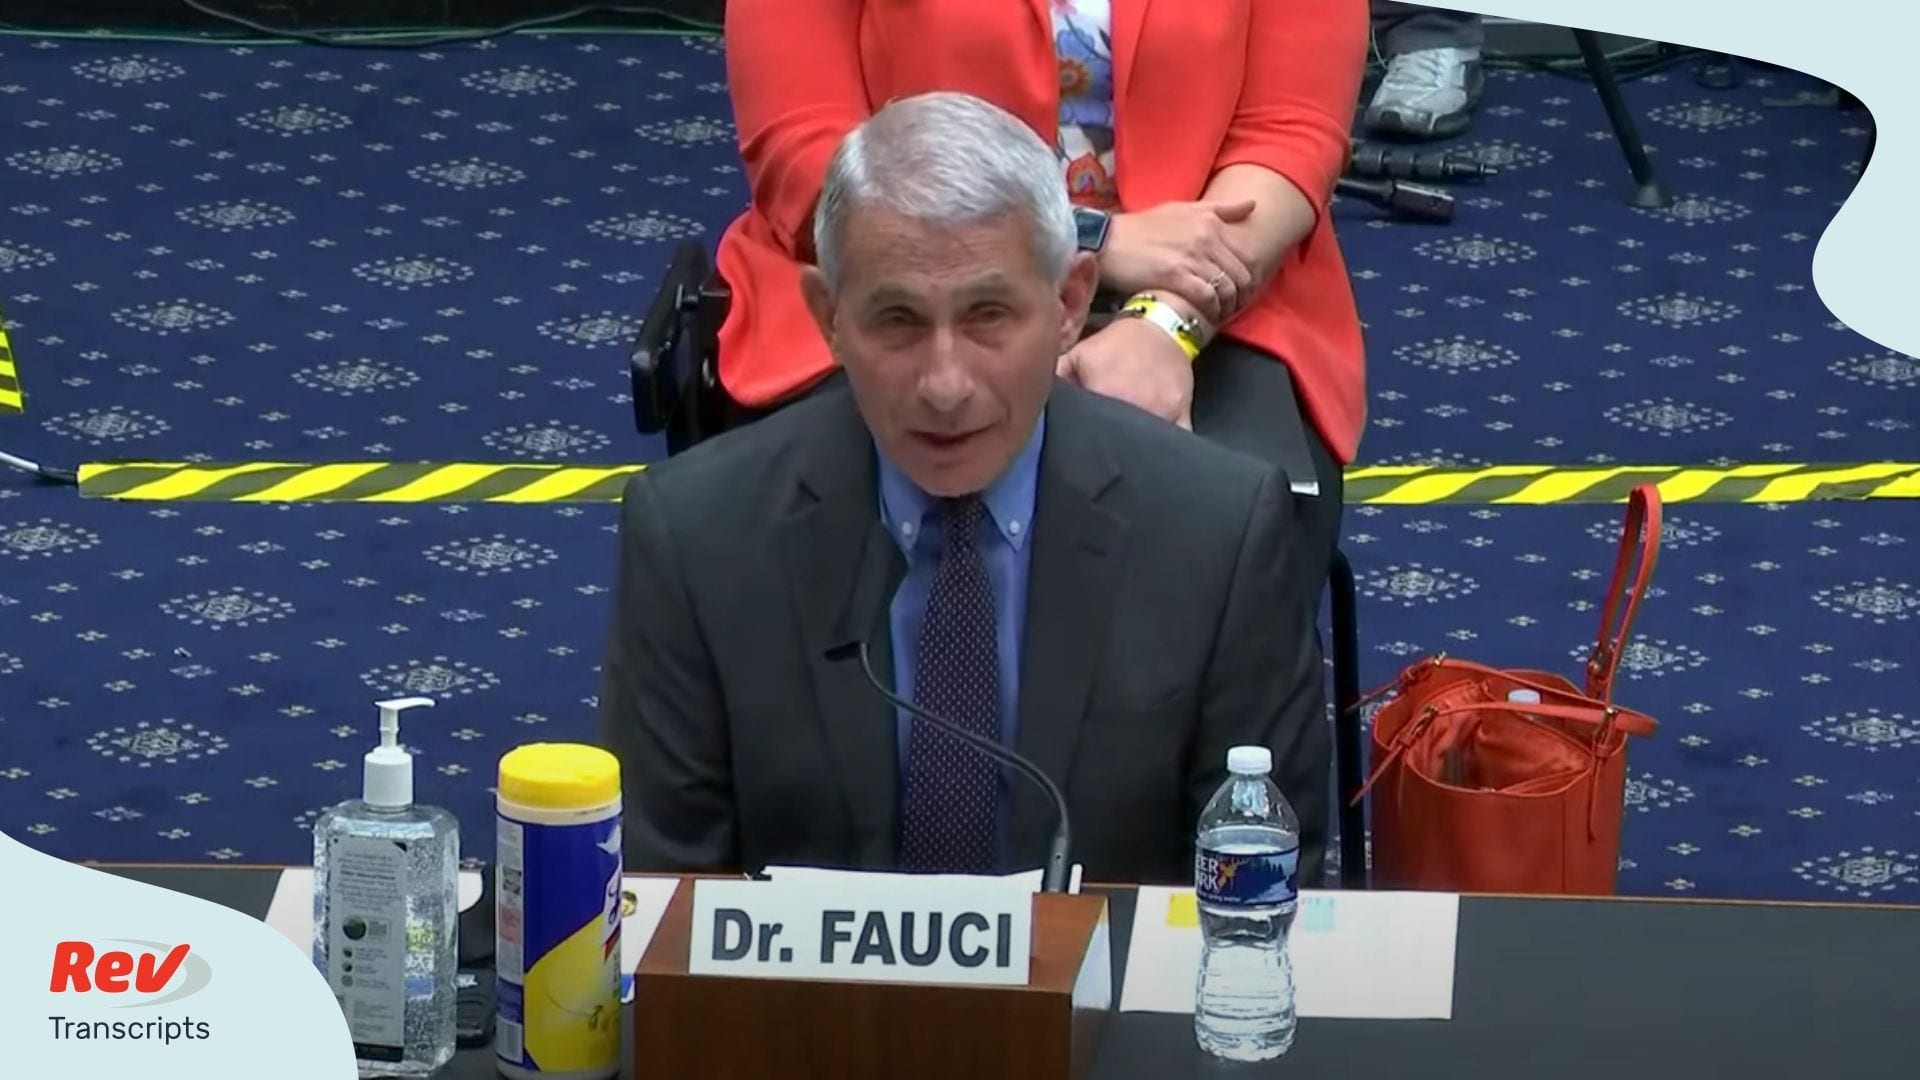 Dr. Fauci & Dr. Redfield Testimony Transcript June 23